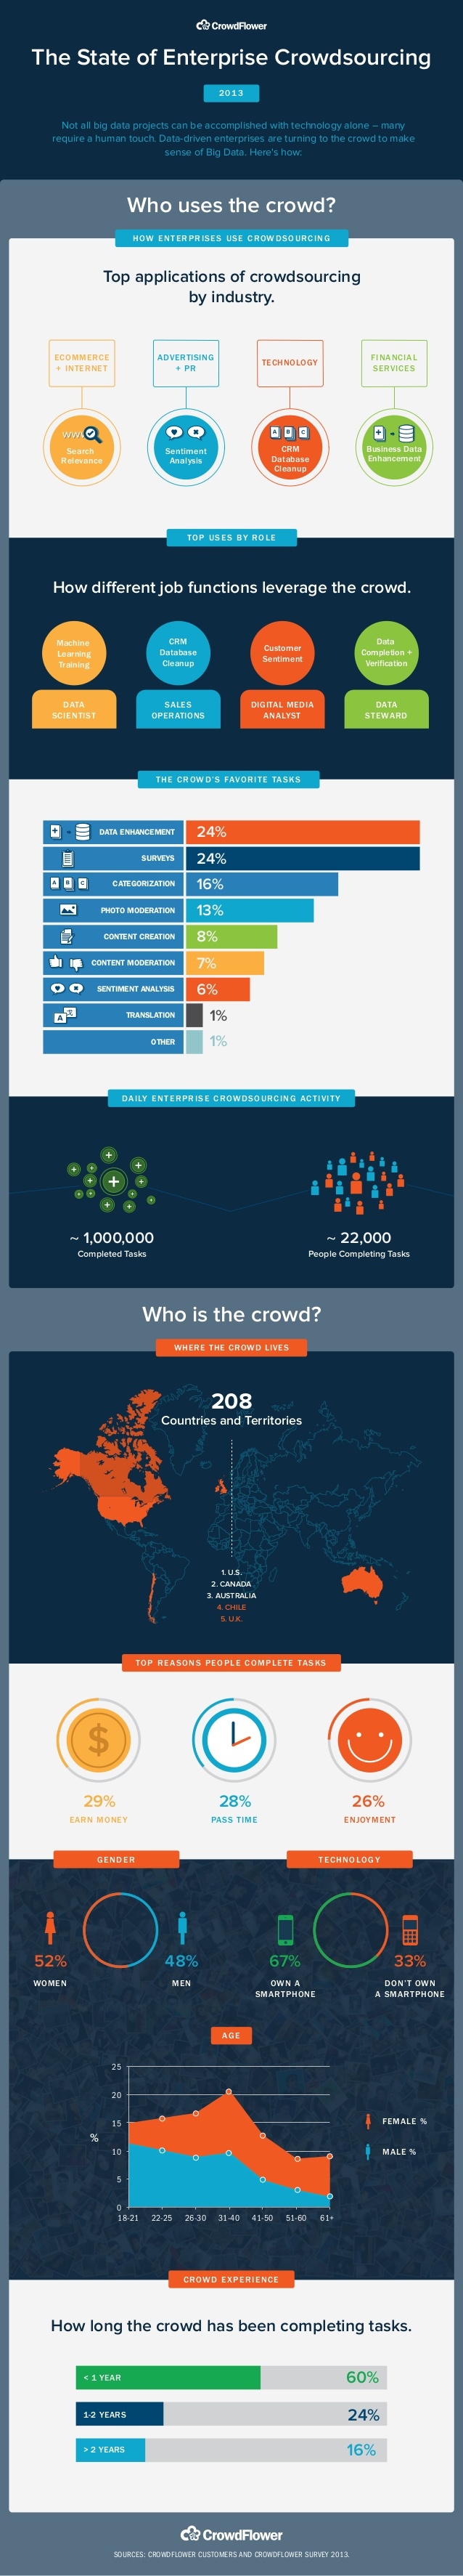 State of Crowdsourcing infographic